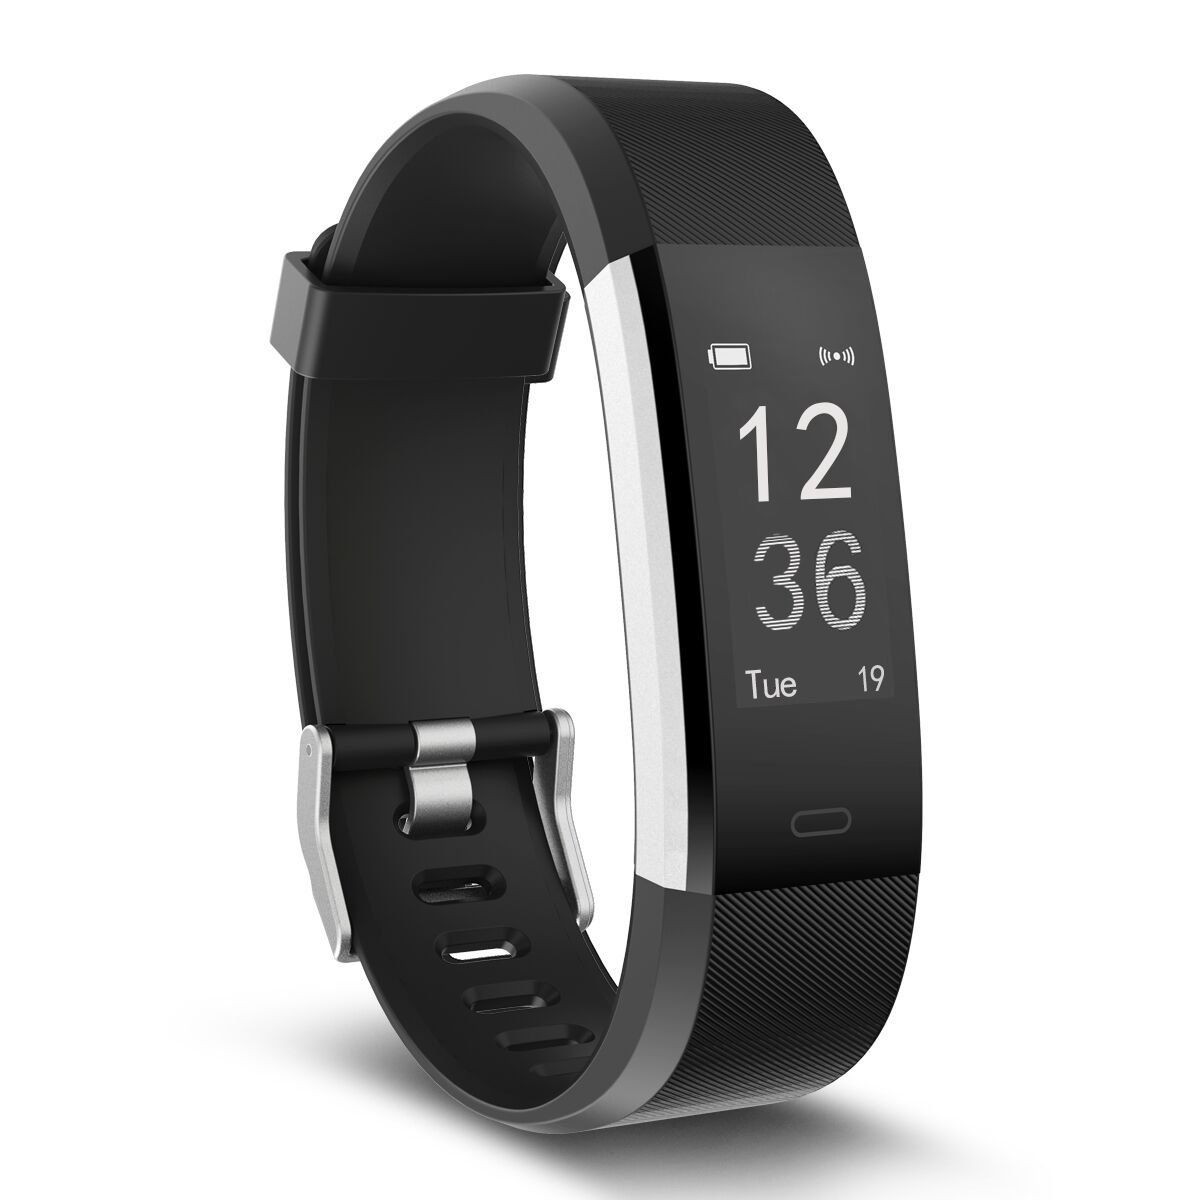 abound technology watches tracking but reviews day expert in vivosmart equipment great wearable hr its options fitness garmin review a better tracker